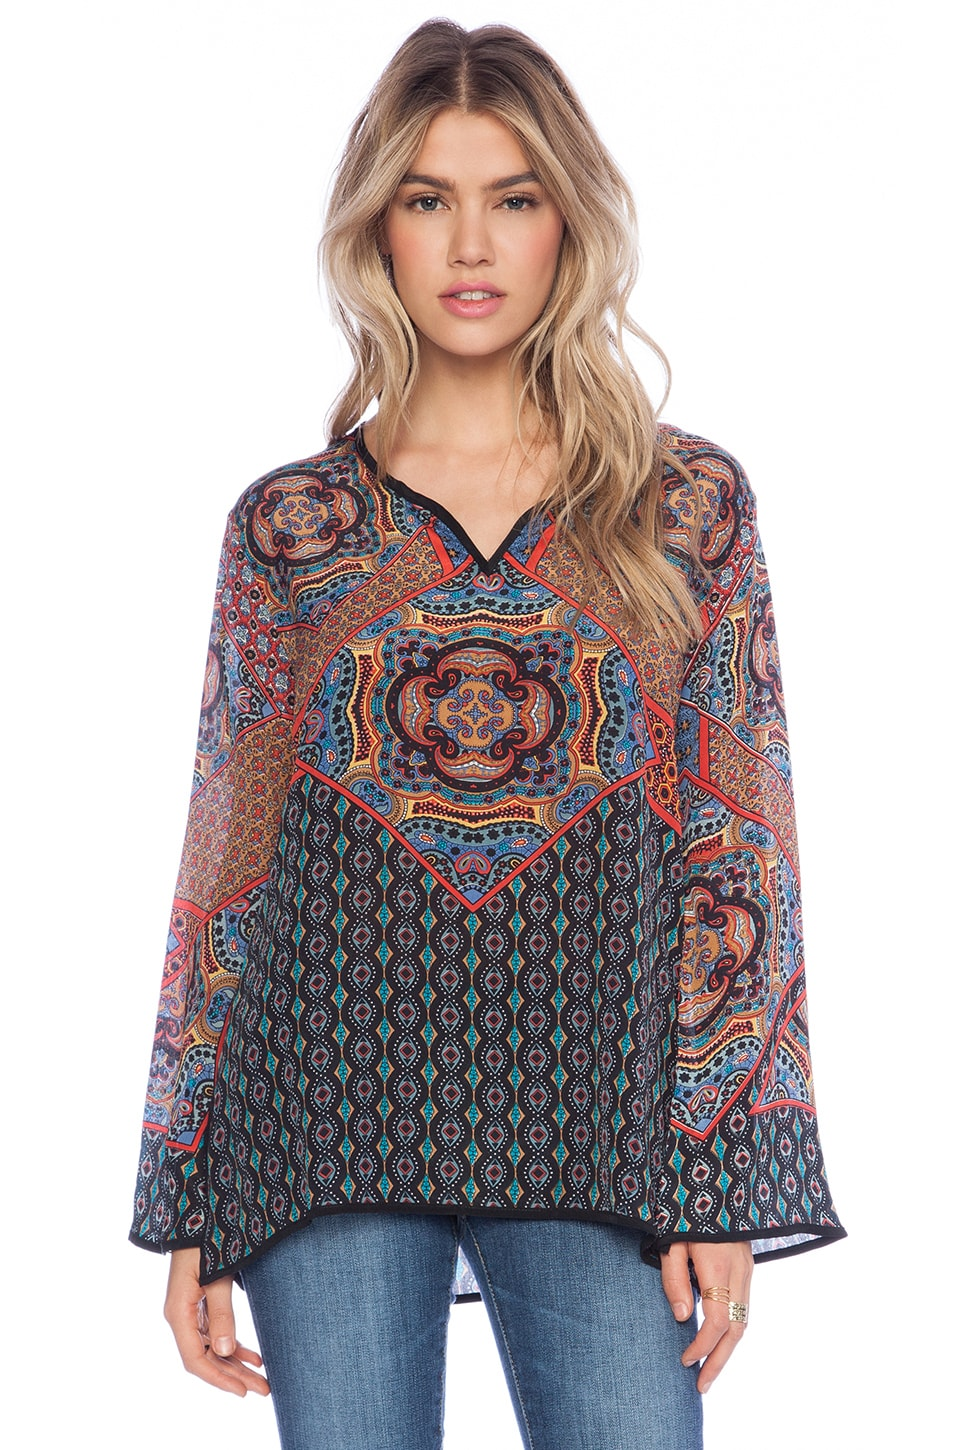 Tolani Lilah Top in Midnight